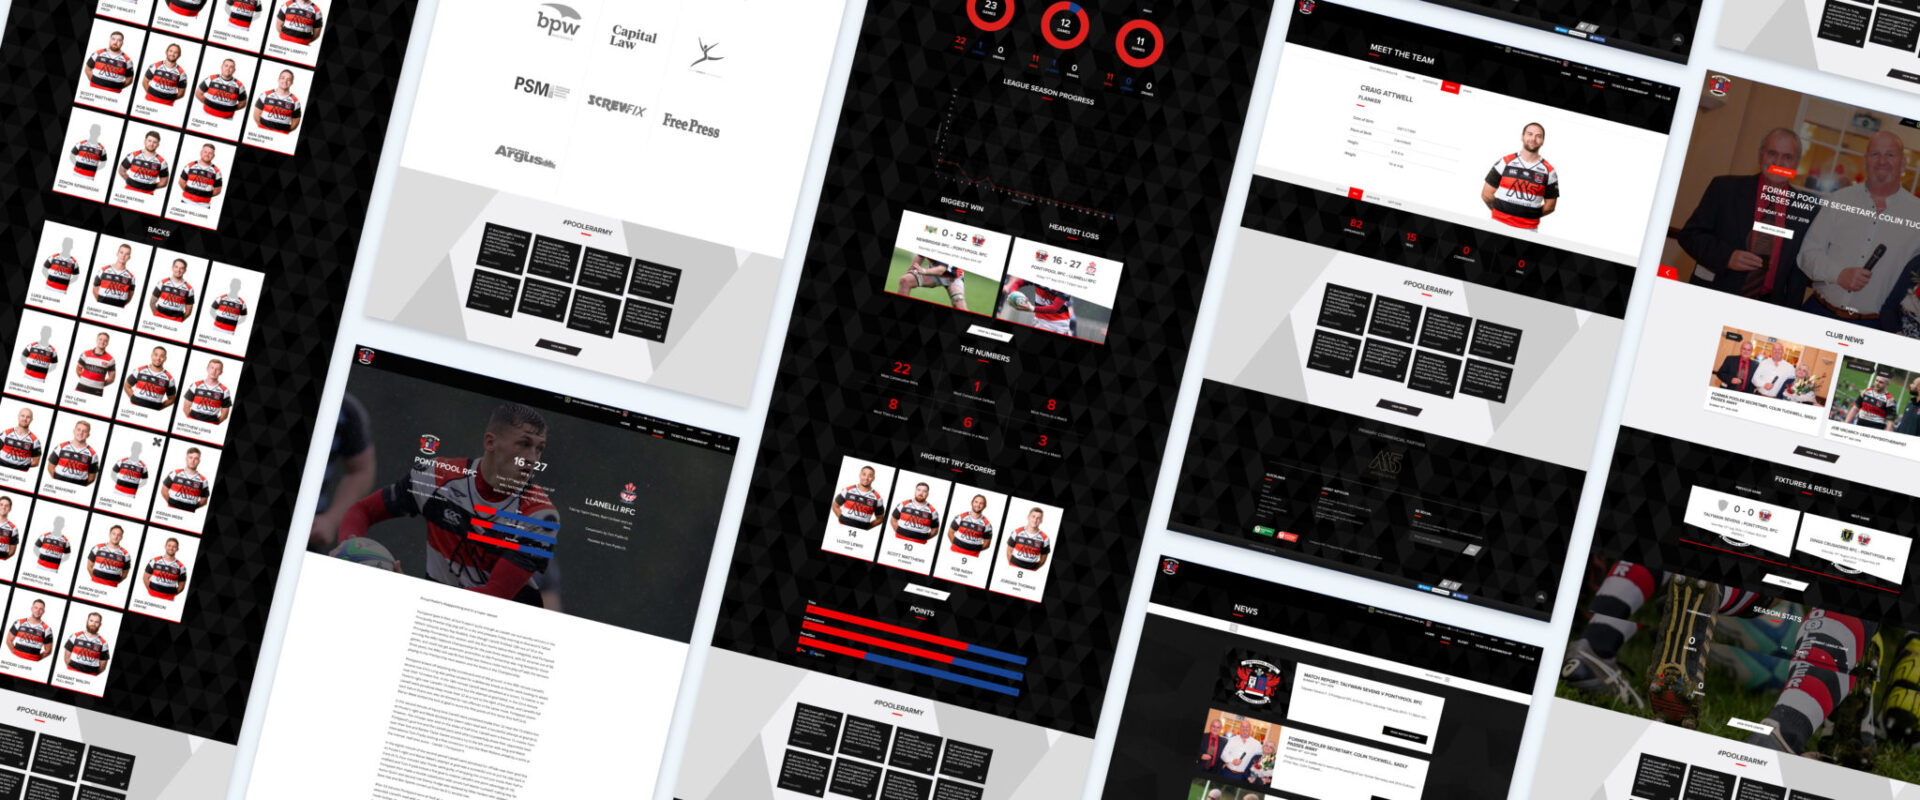 Pontypool RFC Website Snapshot